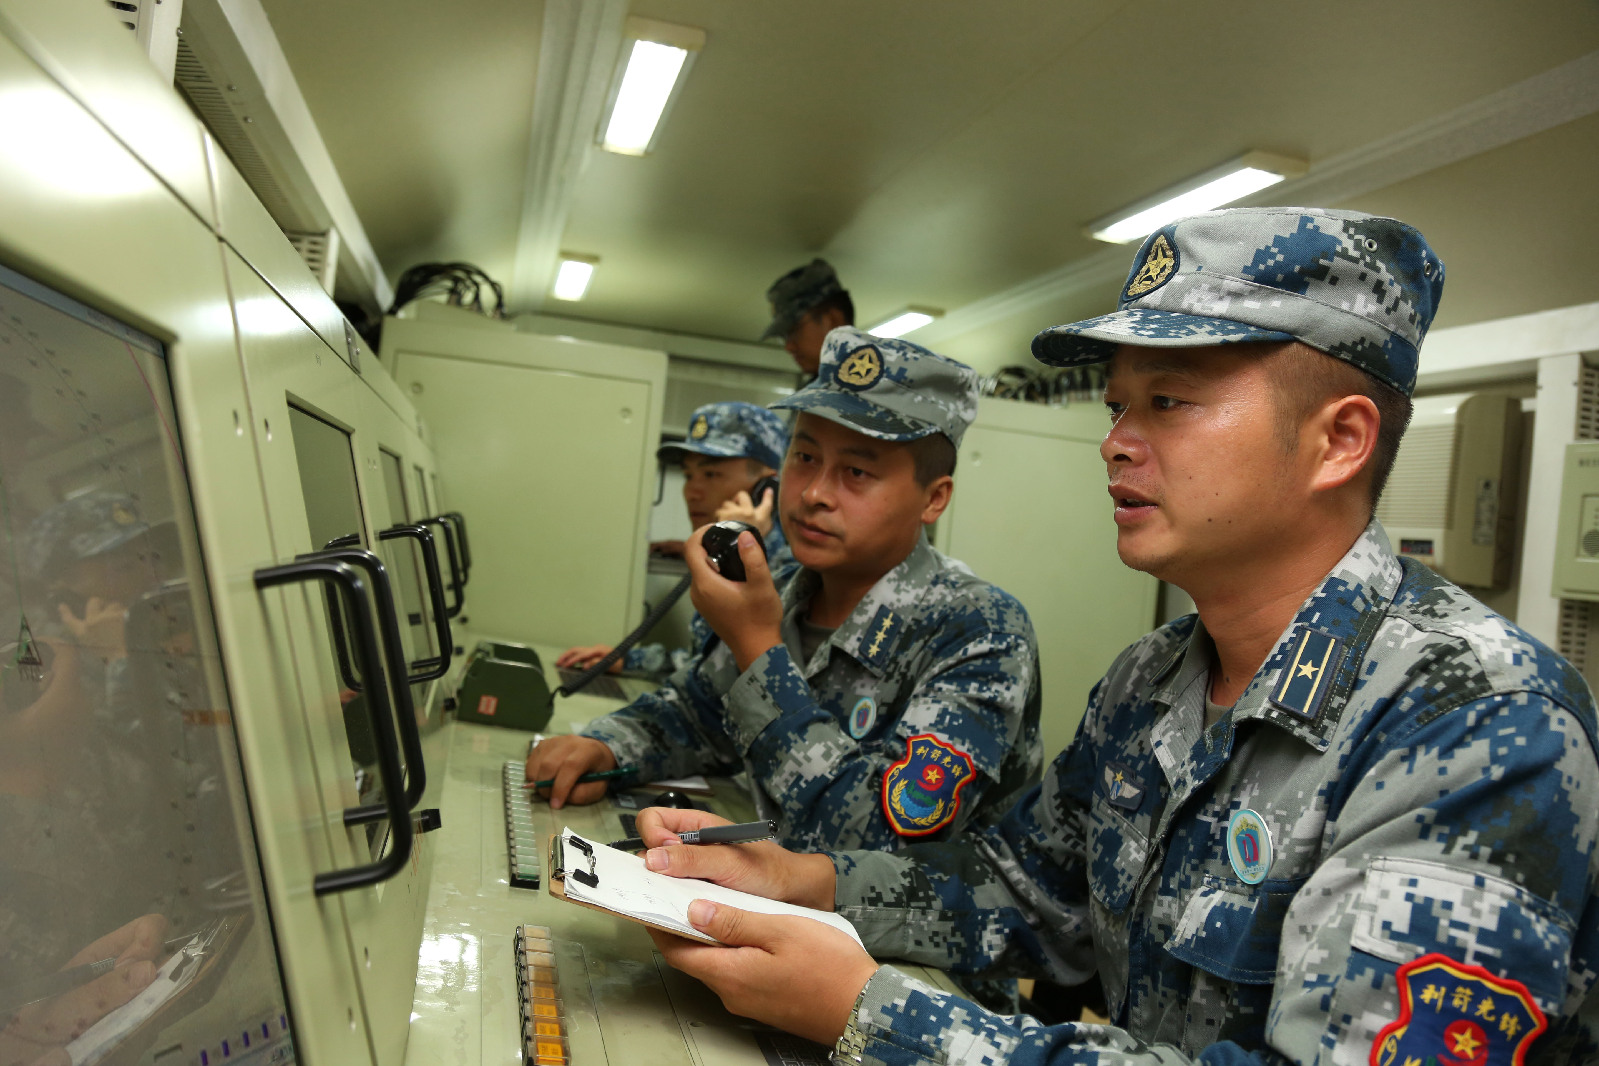 Command and control technicians assigned a missile brigade of the air force under the PLA Central Theater Command deal with flight information during a ground-aerial confrontation drill at a military training base in China's northern Fujian province on Oct. 10, 2016. ( 81.cn/ Li Ming )